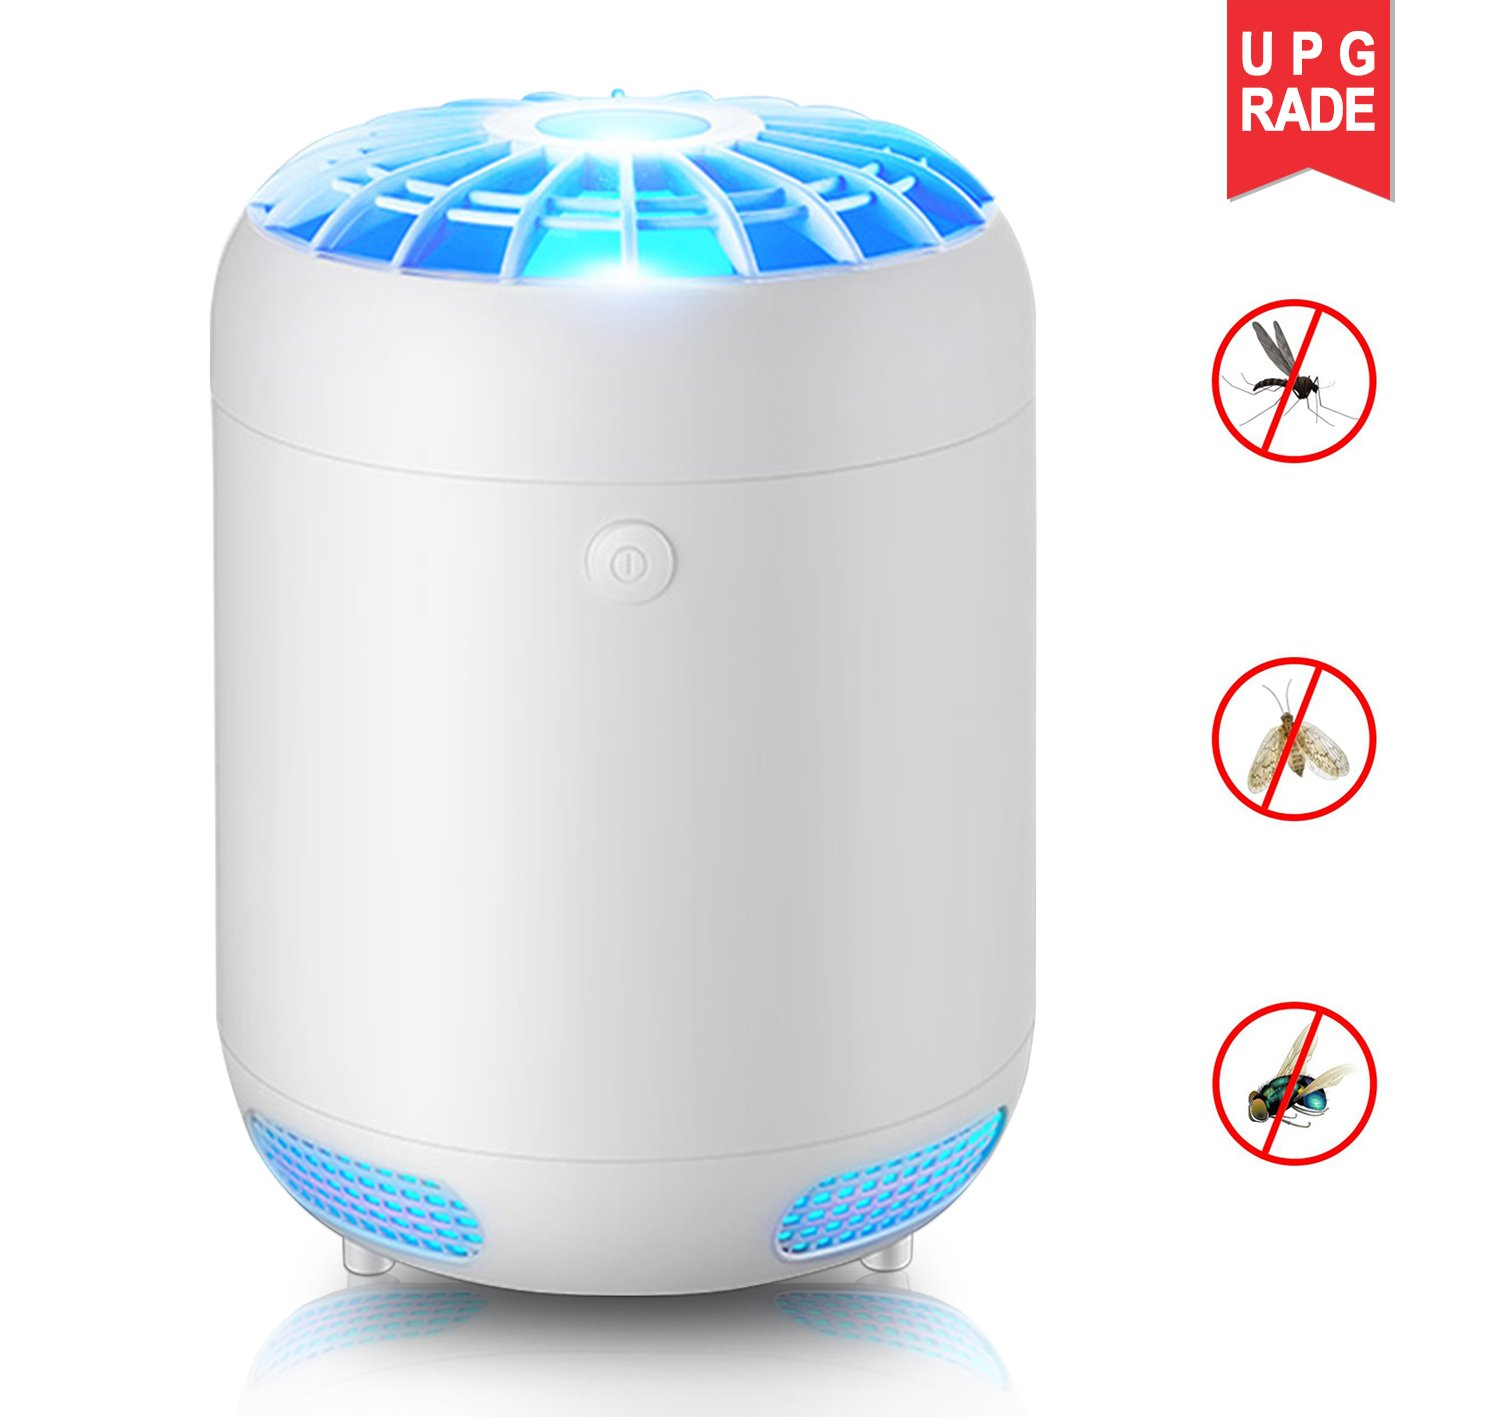 KKPOT Electronic Bug Zapper,Indoor Mosquito Killer,Insect Catcher Trap, Fly Pest Control Device with UV Light Lamp for Home and Commercial Night Use